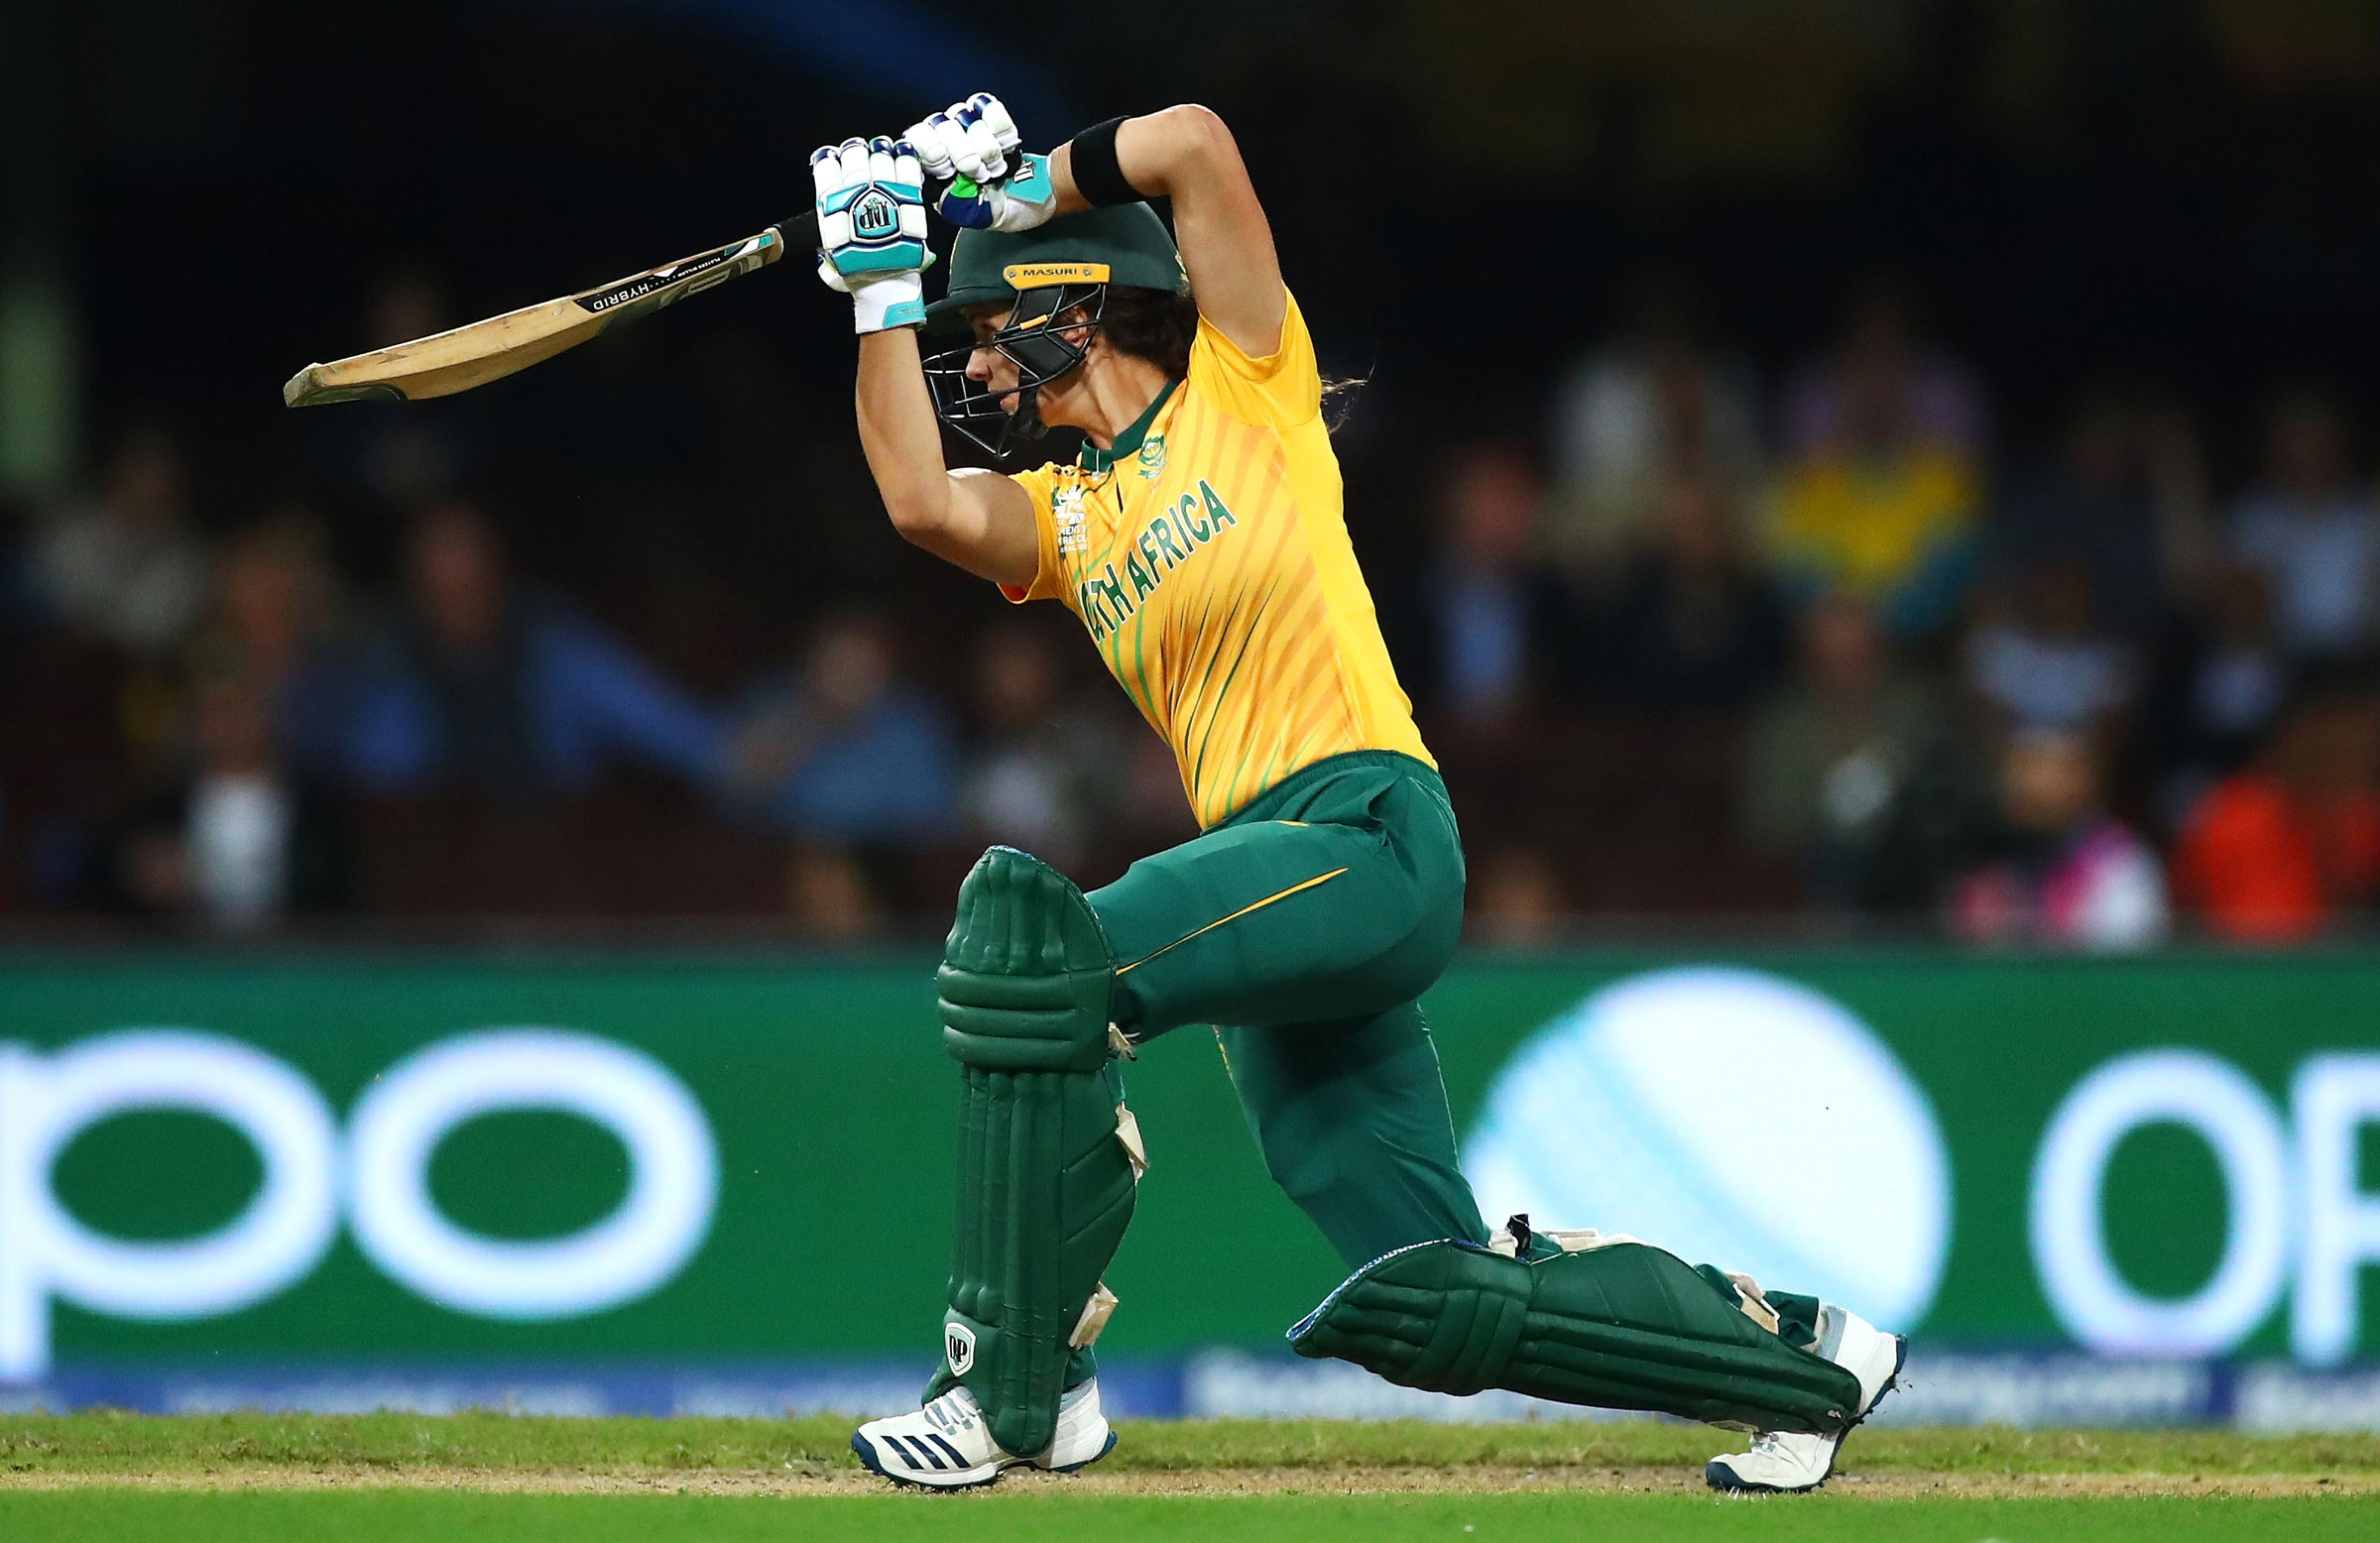 Laura Wolvaardt in full flight at the T20 World Cup // Getty